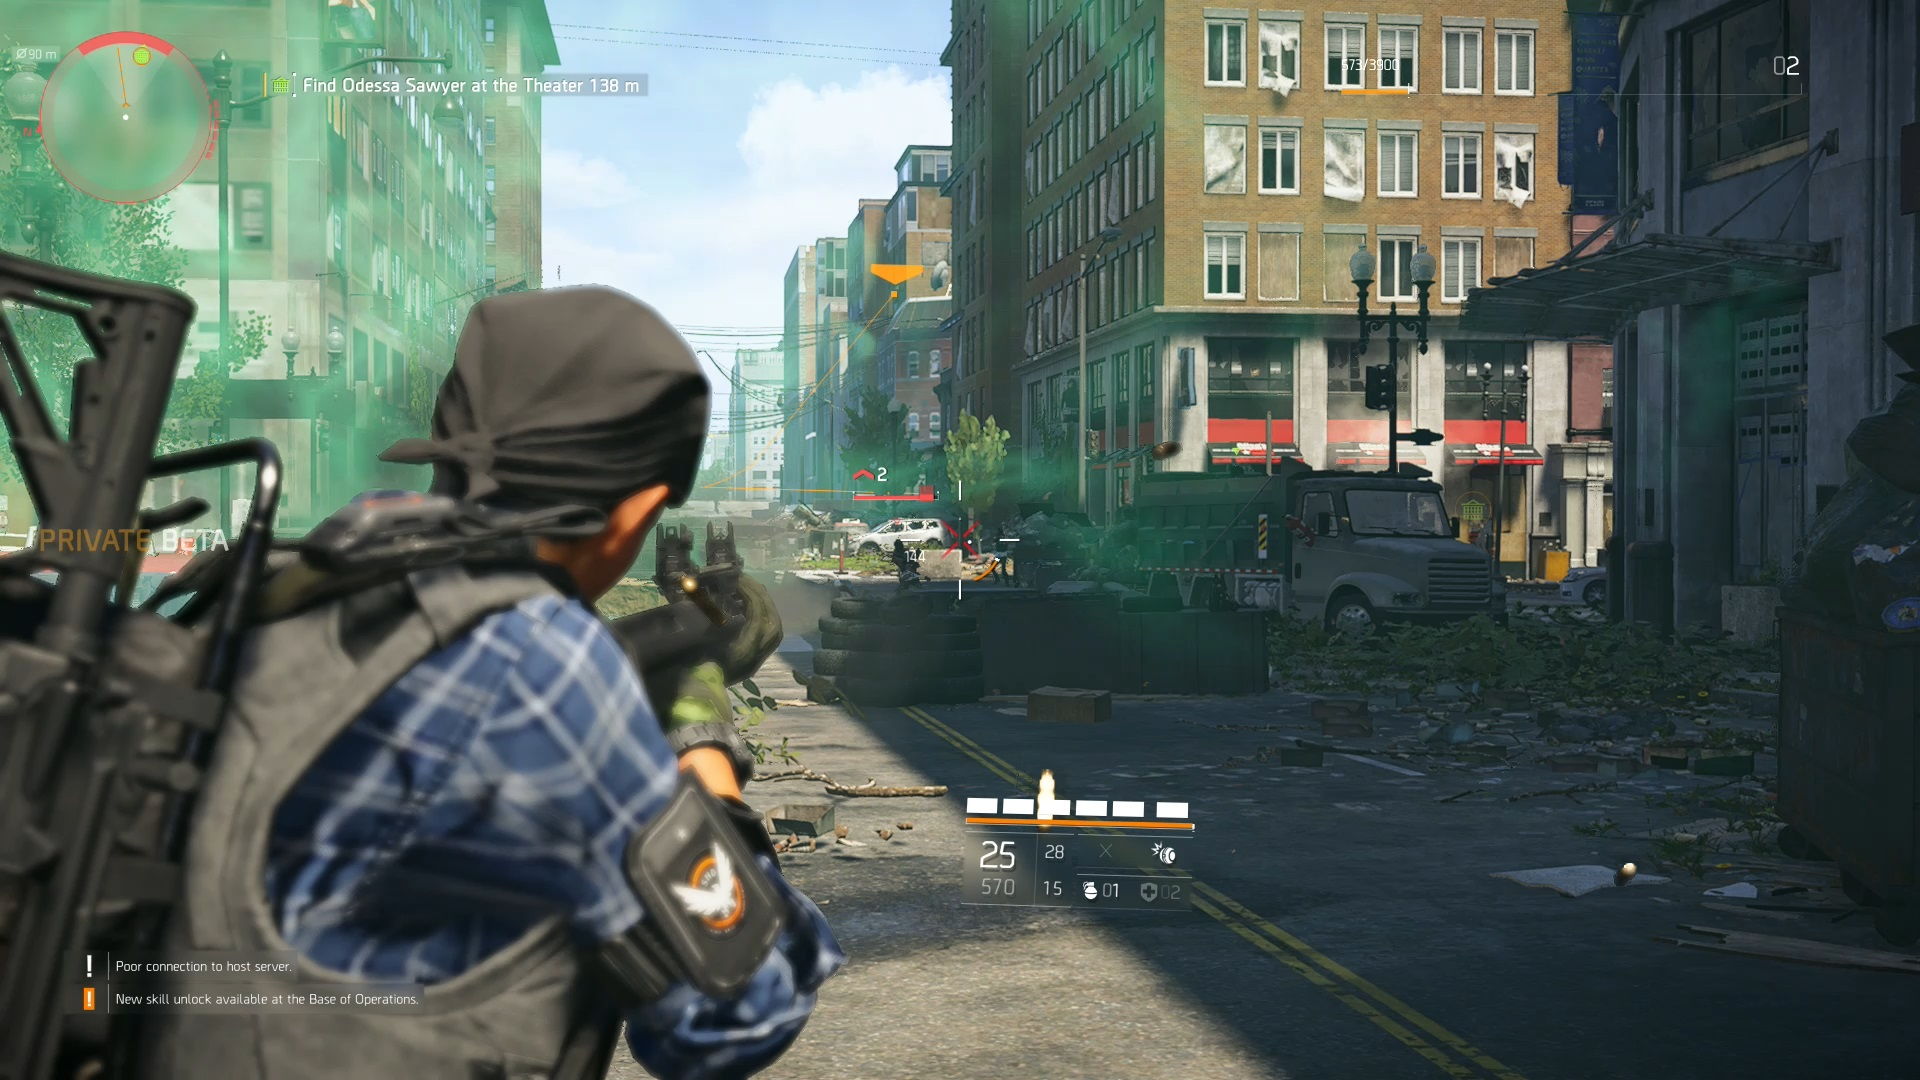 The Division 2 Private Beta - We need to see more - htxt africa